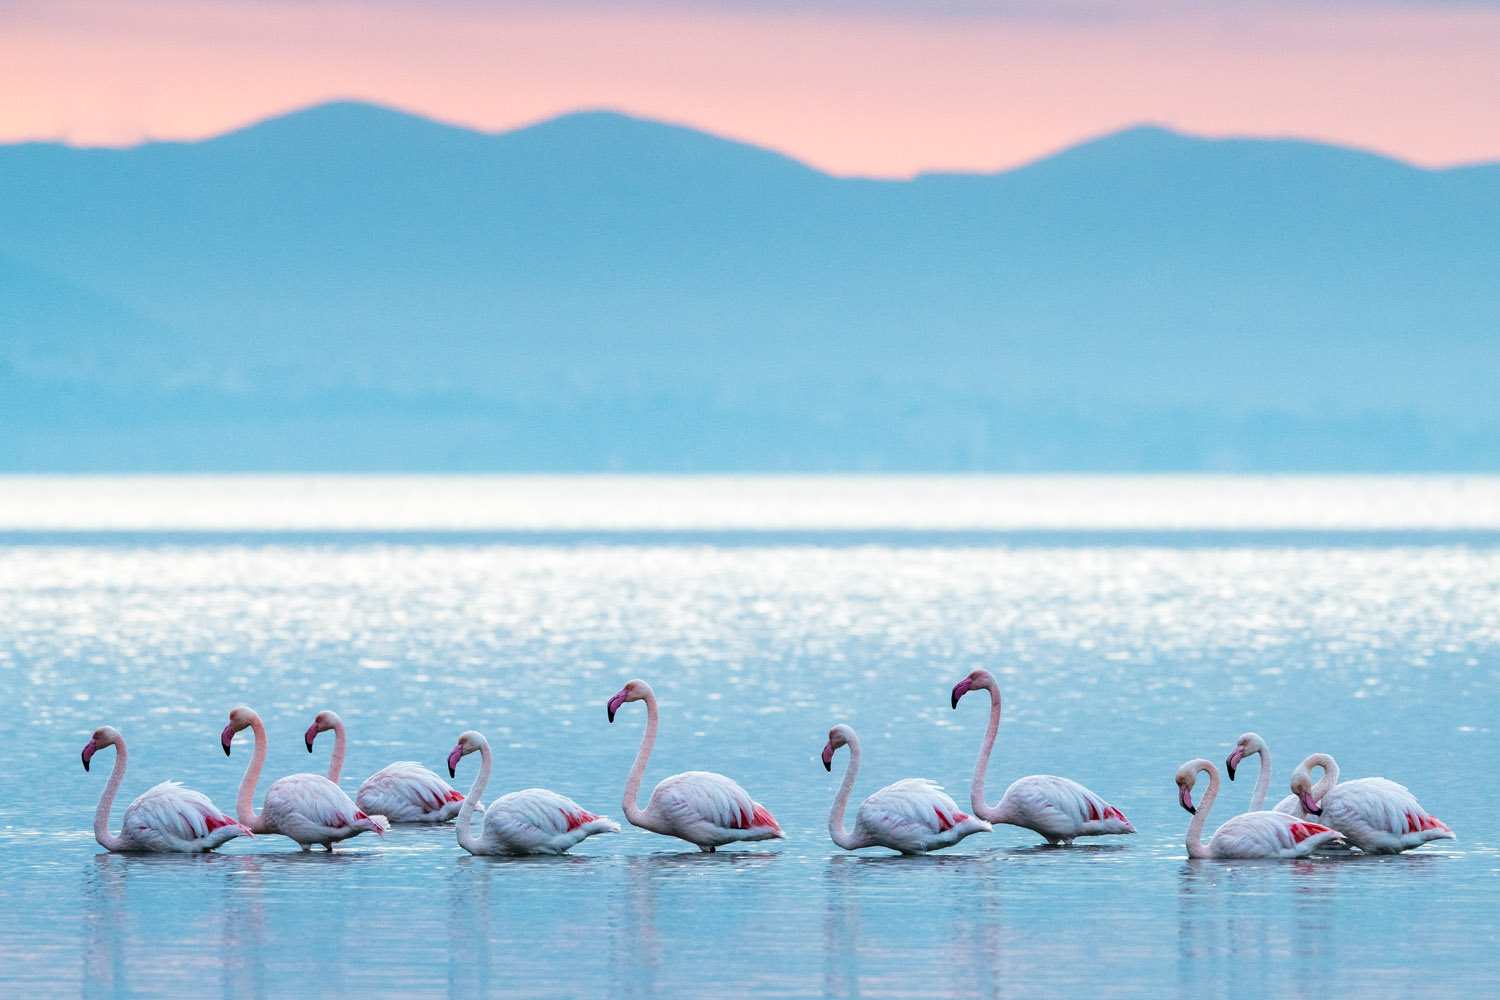 Greater flamingos in Thermaic Gulf at sunrise, Axios Delta National Park, Thessaloniki, Greece